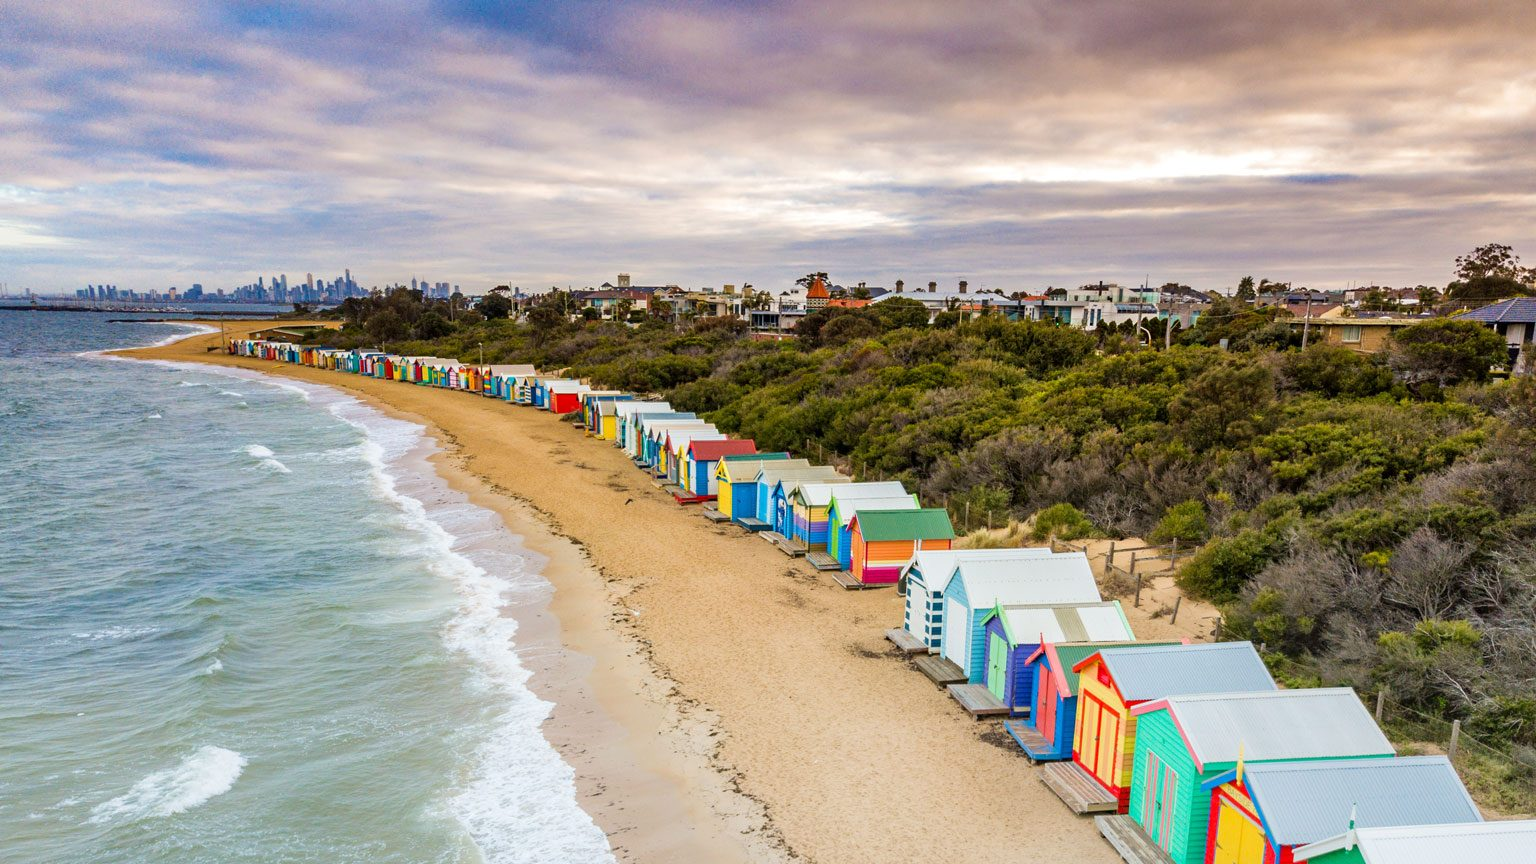 Drone view of Brighton Bathing Boxes in Victoria with cloudy sky in the background, Australia